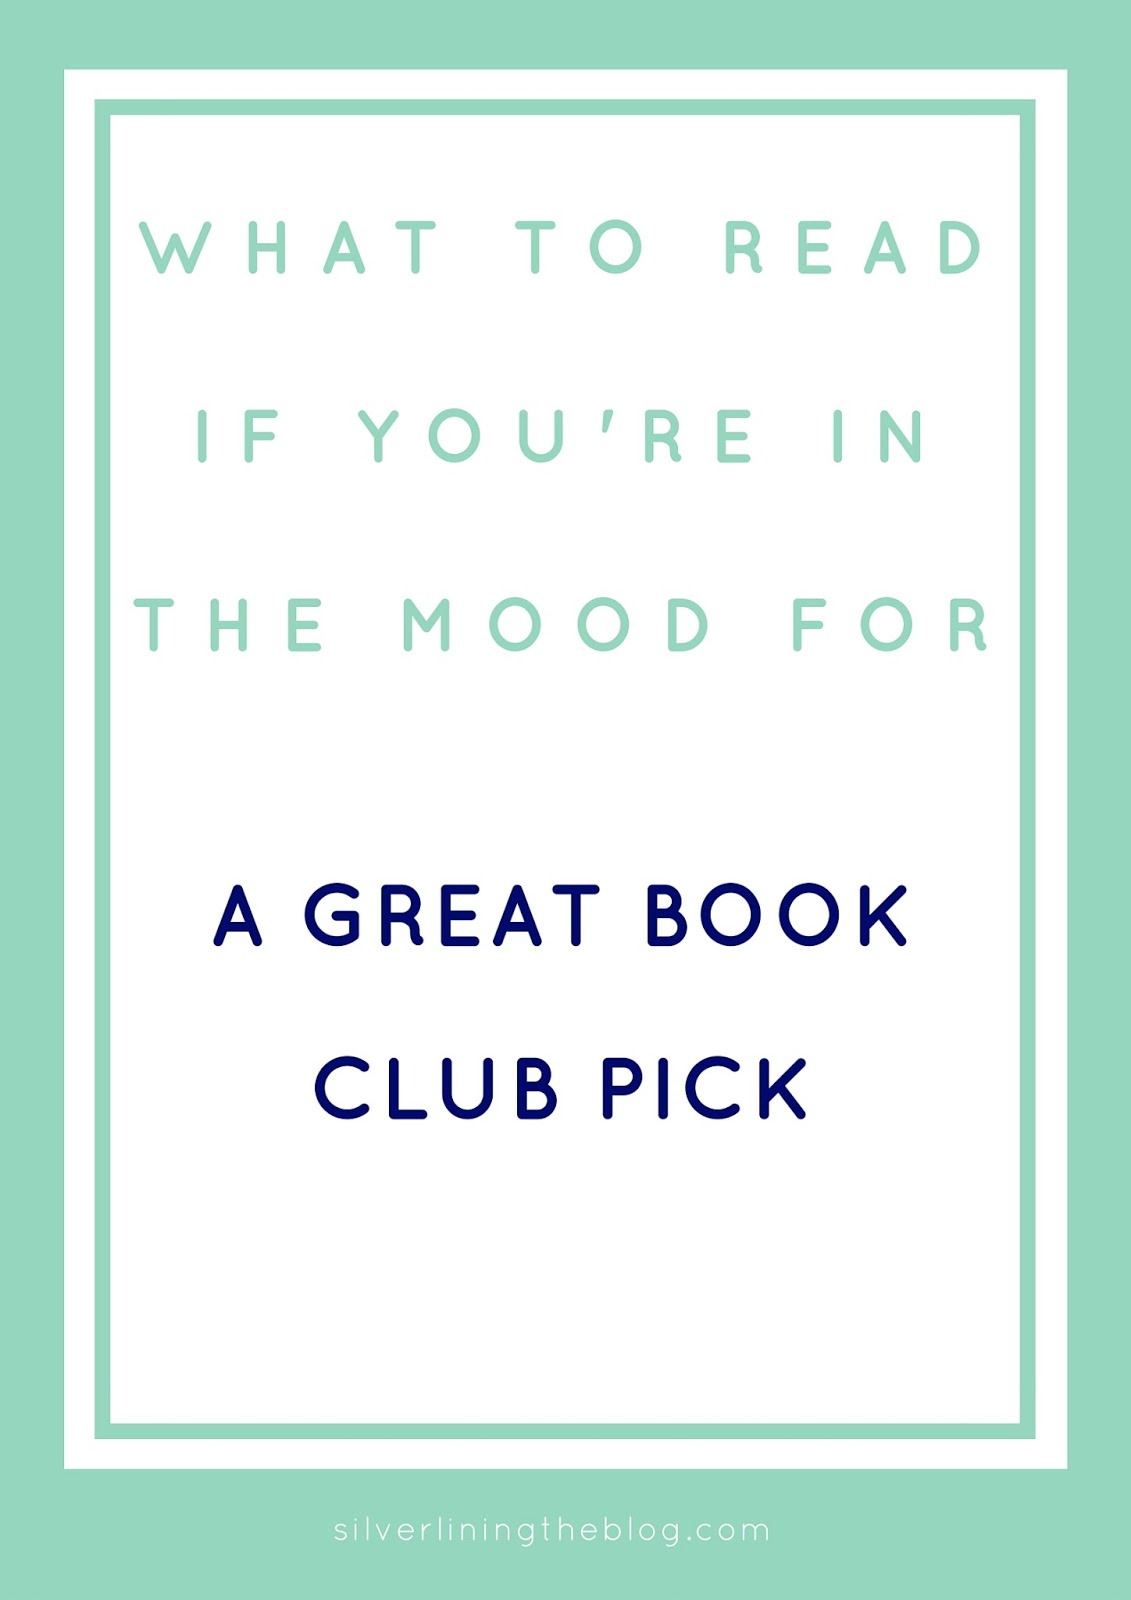 Need a great, easy fiction read that everyone loves for book club? This is a great list of modern fiction novels that lend themselves to great book club discussion.